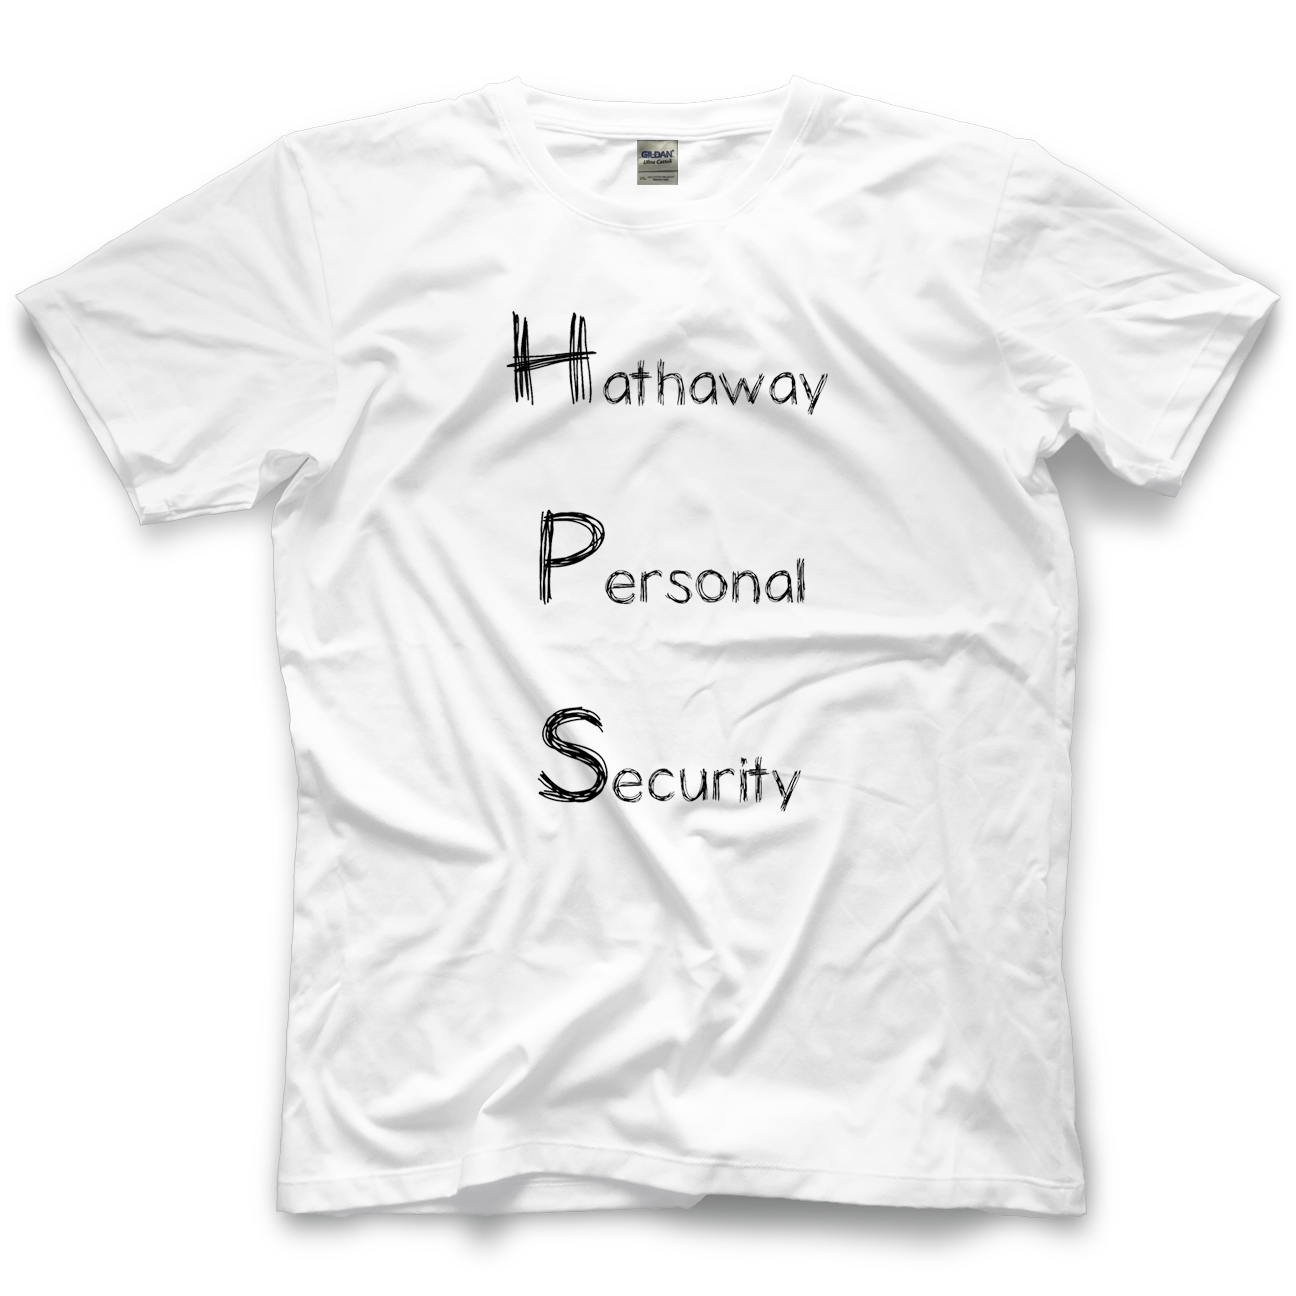 Hathaway Personal Security